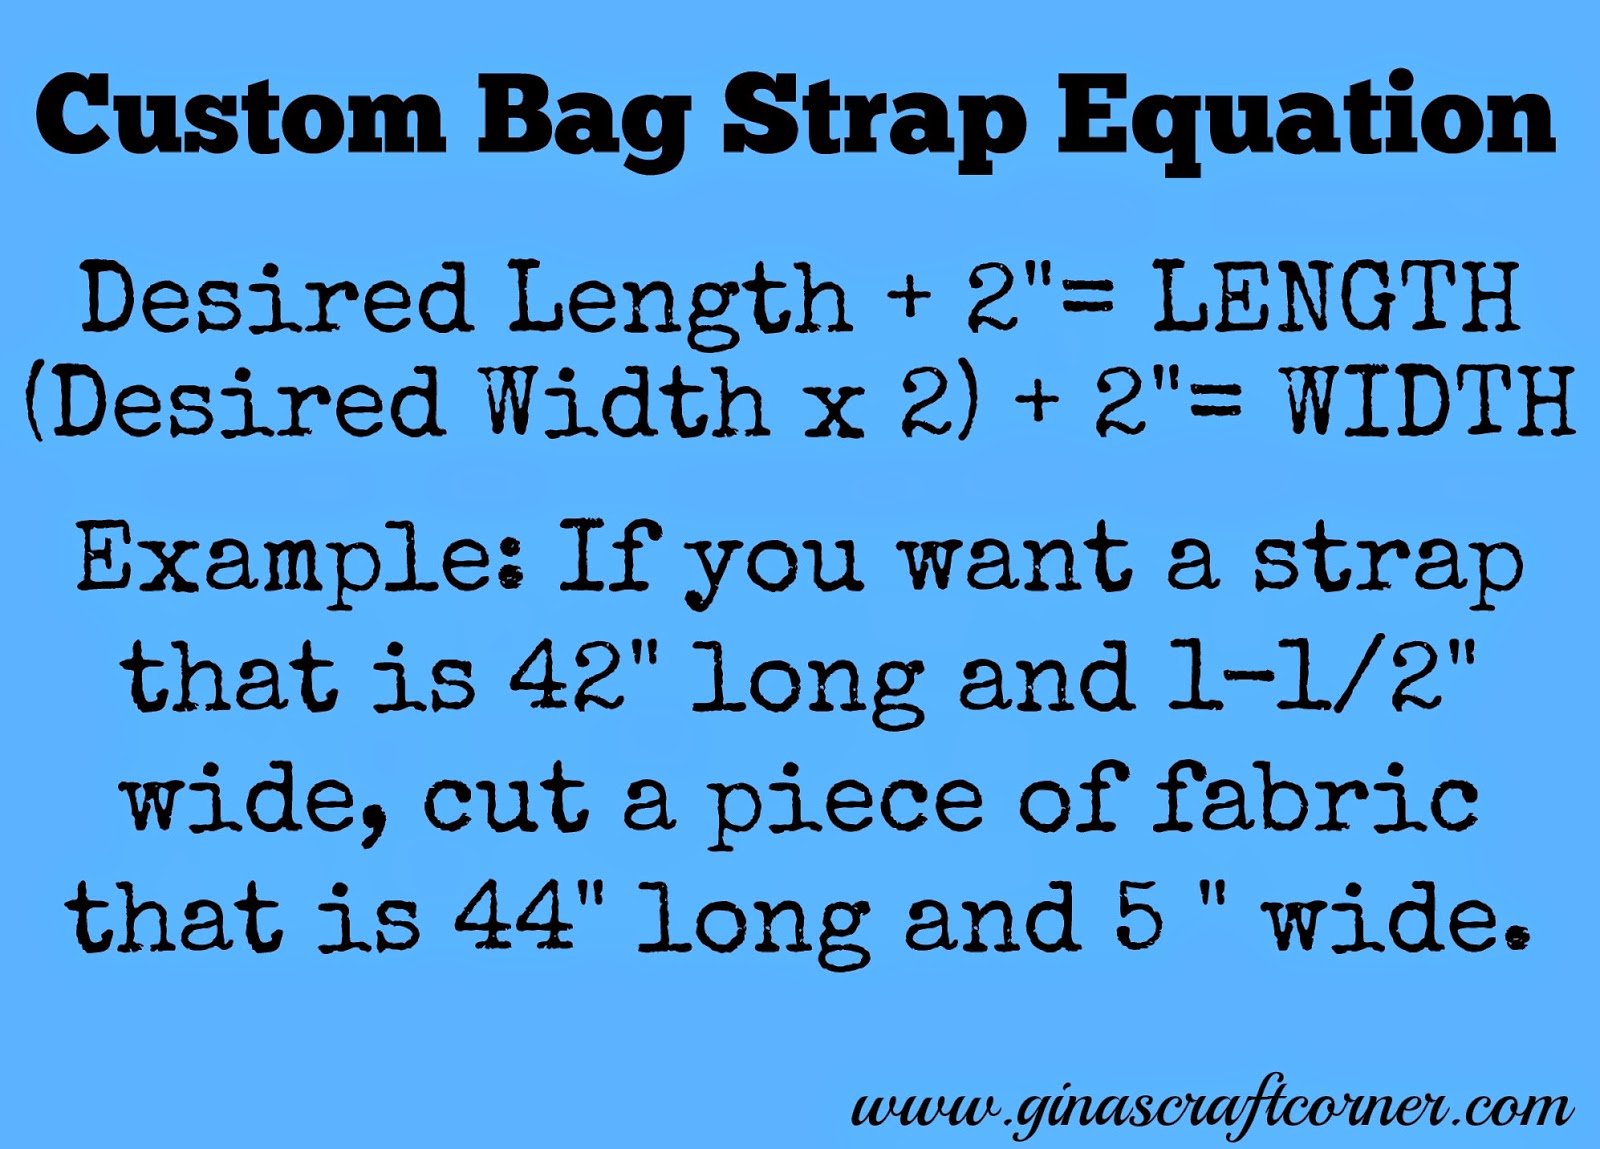 Custom Bag Strap Equation by Ginas Craft Corner